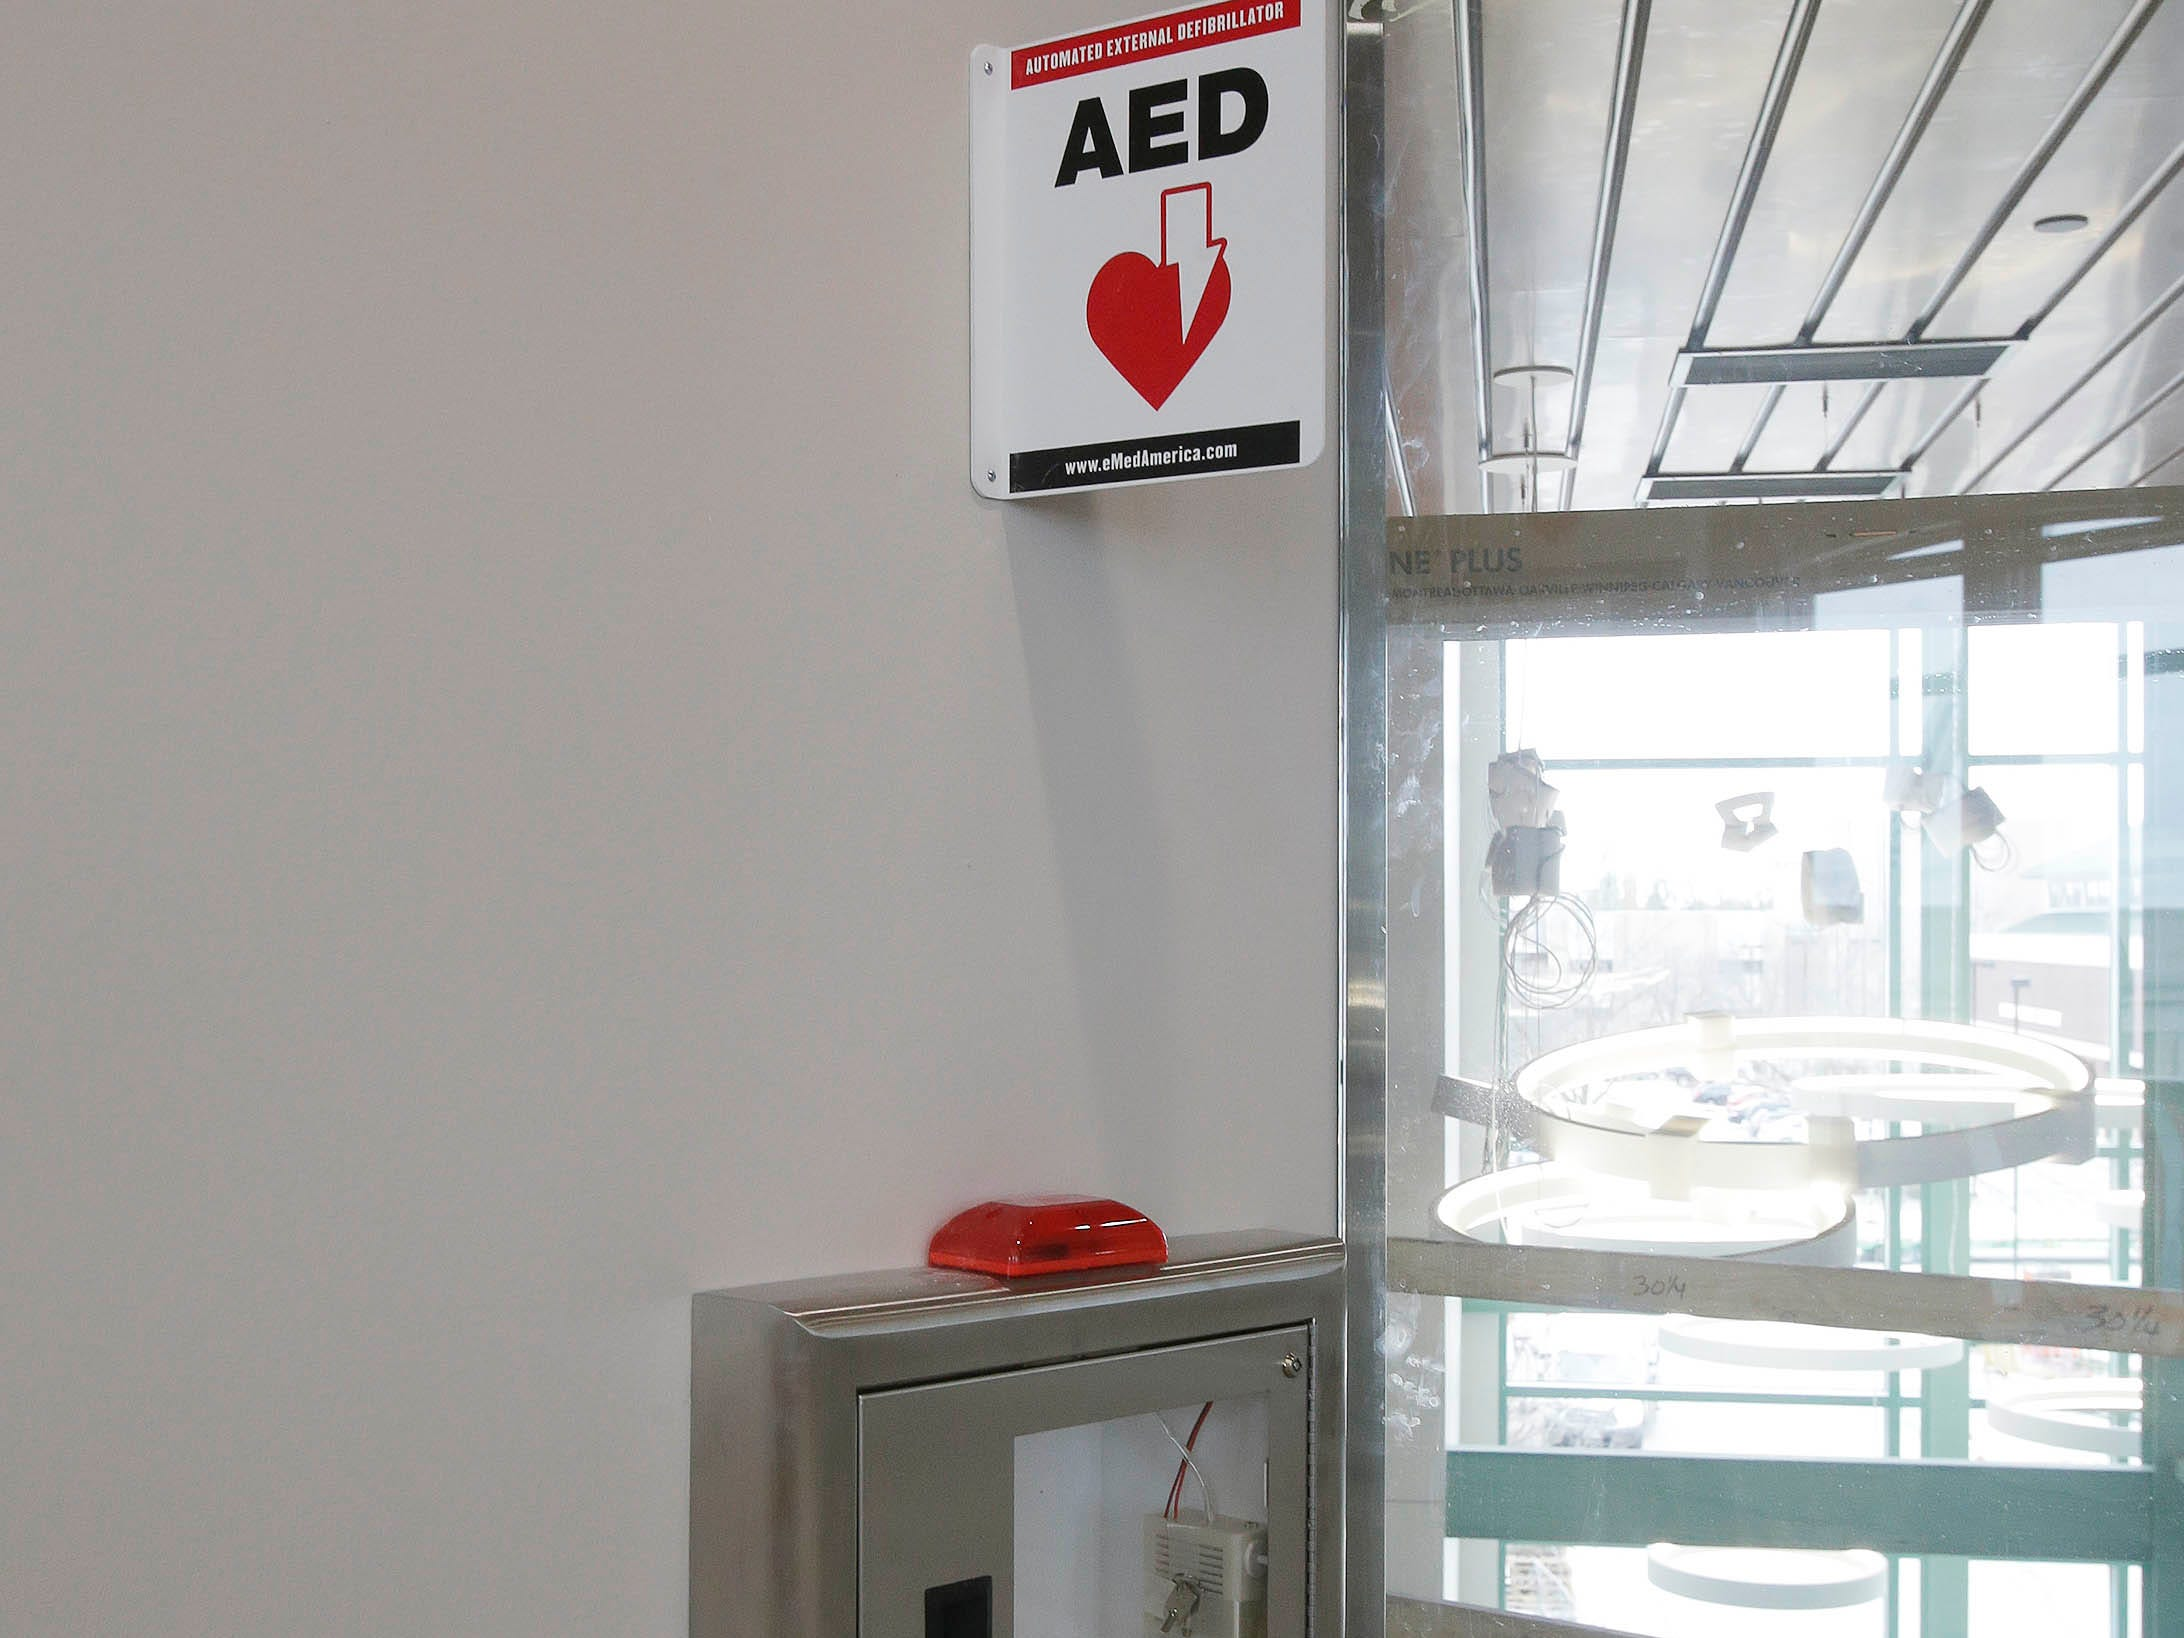 The Sheboygan Council Chamber will feature an AED as seen, Tuesday, May 7, 2019, in Sheboygan, Wis. Sheboygan's City Hall will see many improvements in the $10.5 million improvement project.